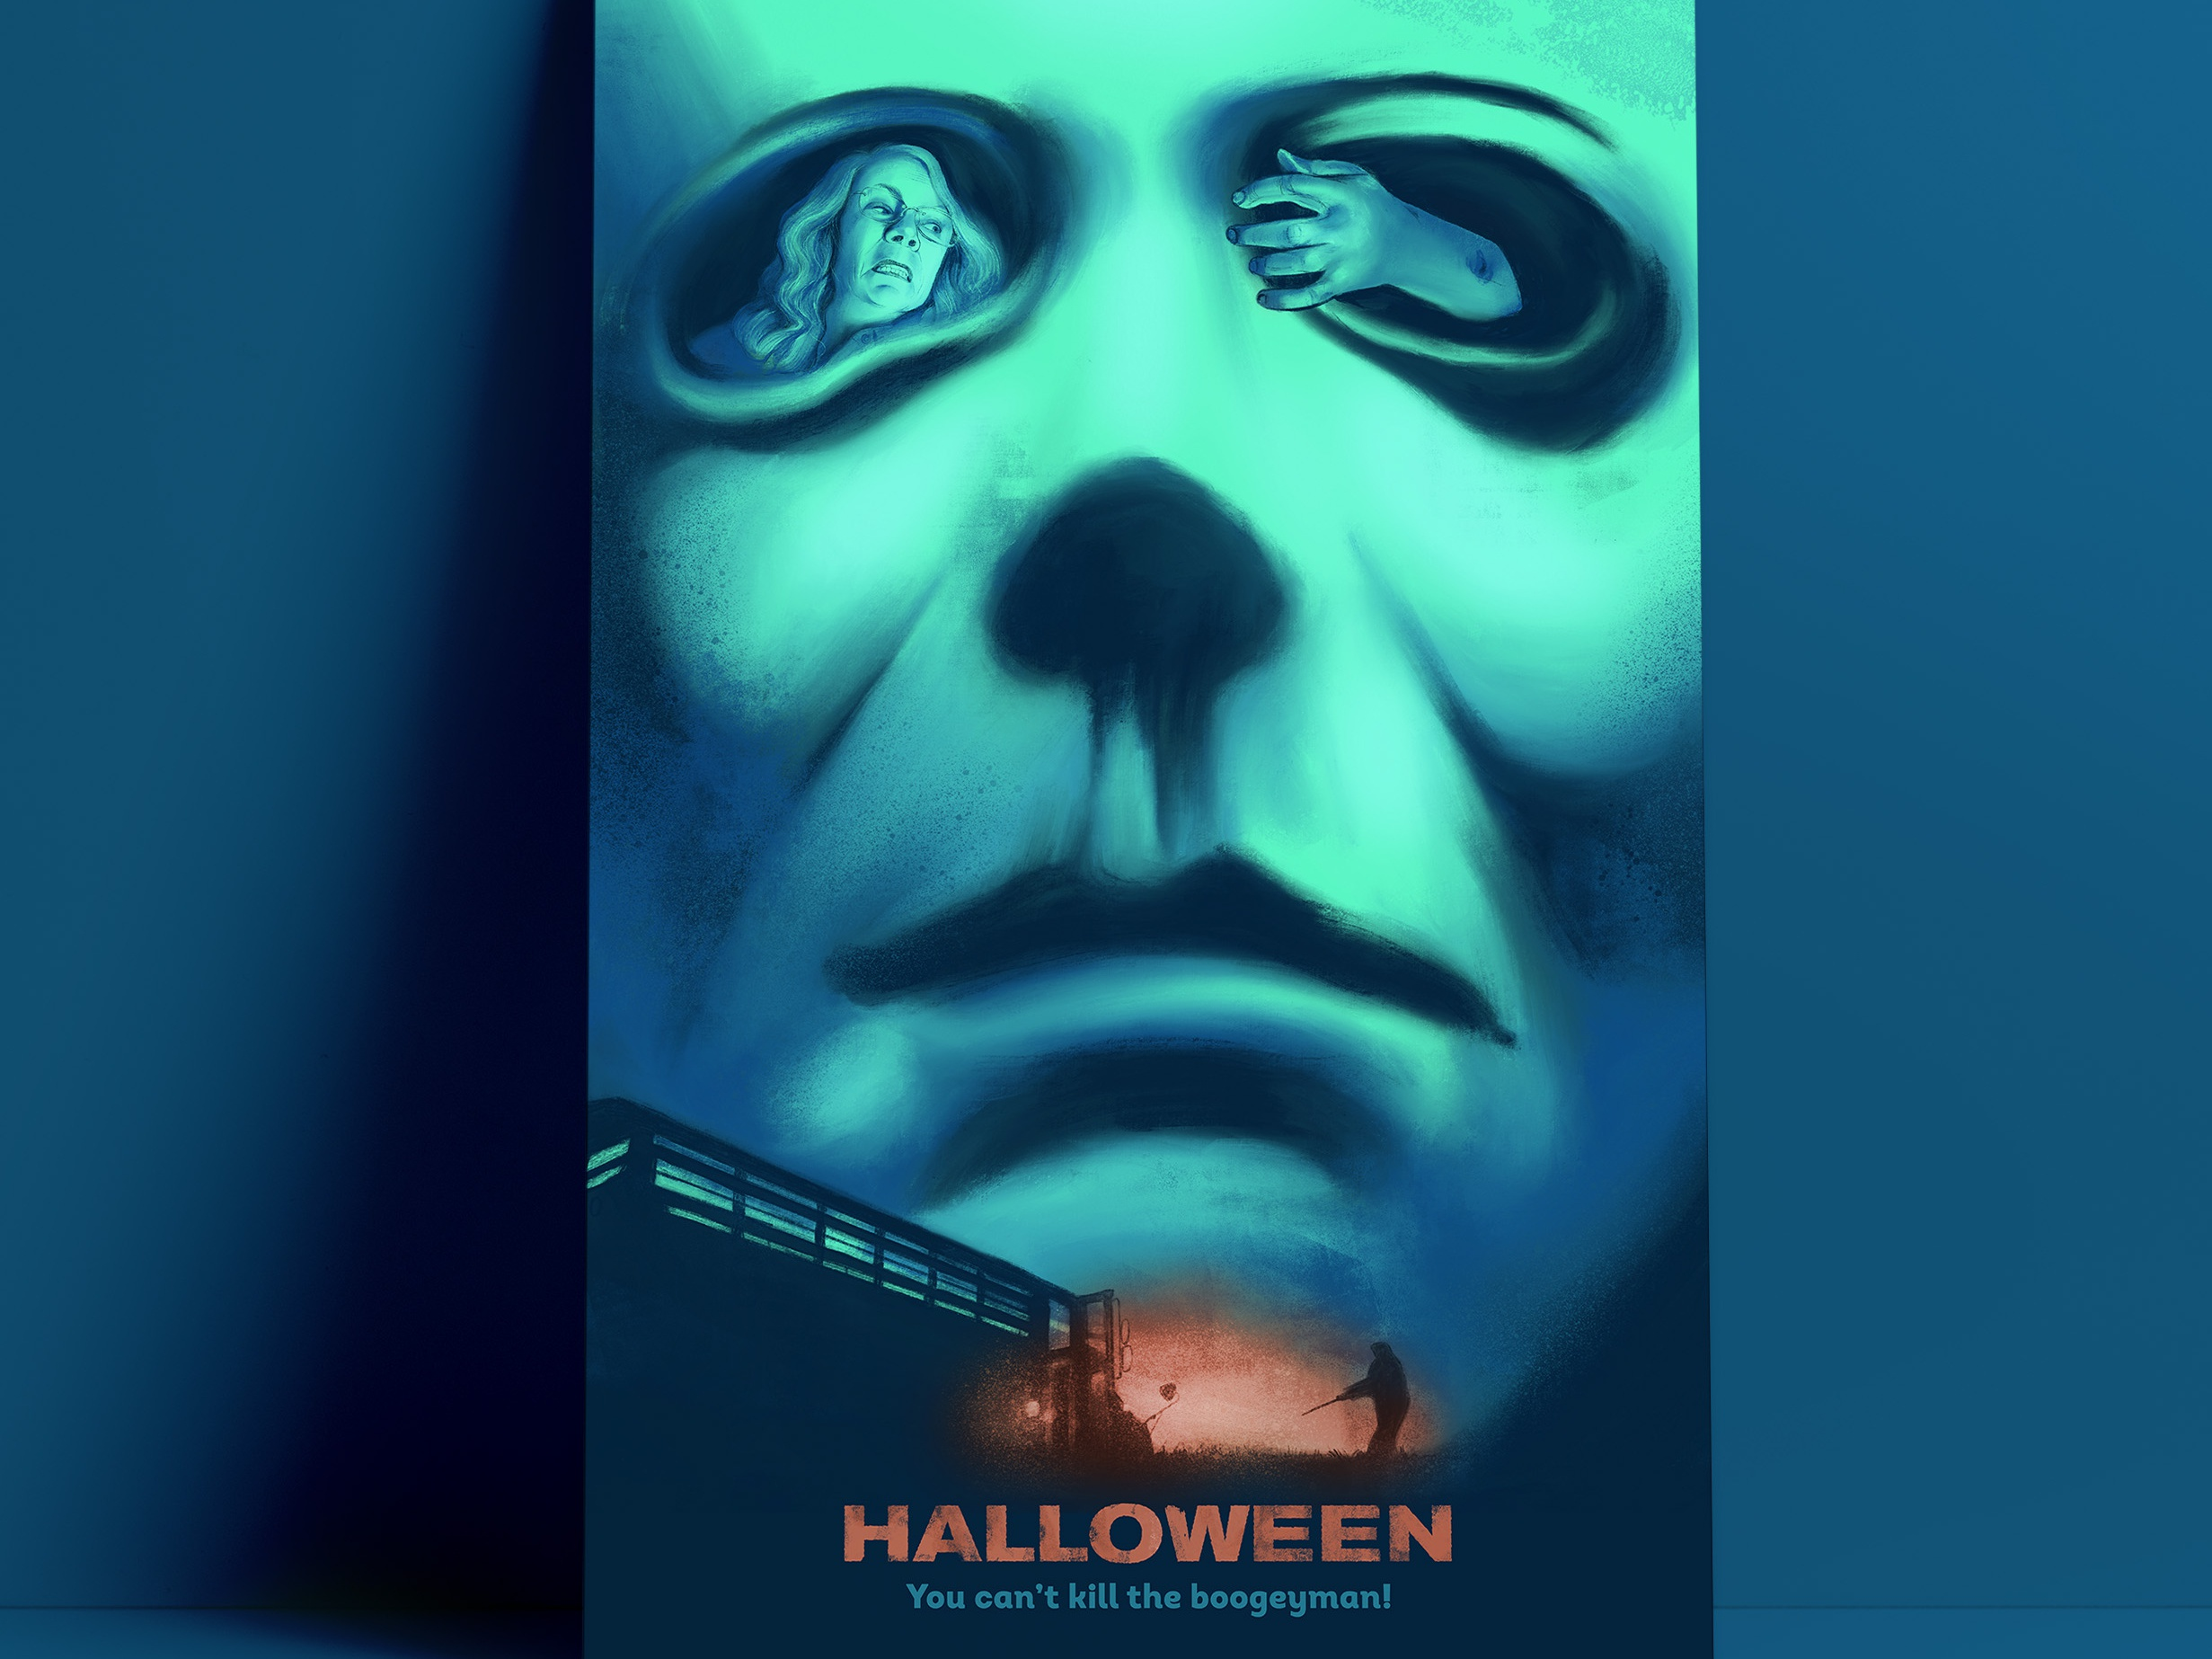 Alternative Movie Poster Halloween by The Commas on Dribbble